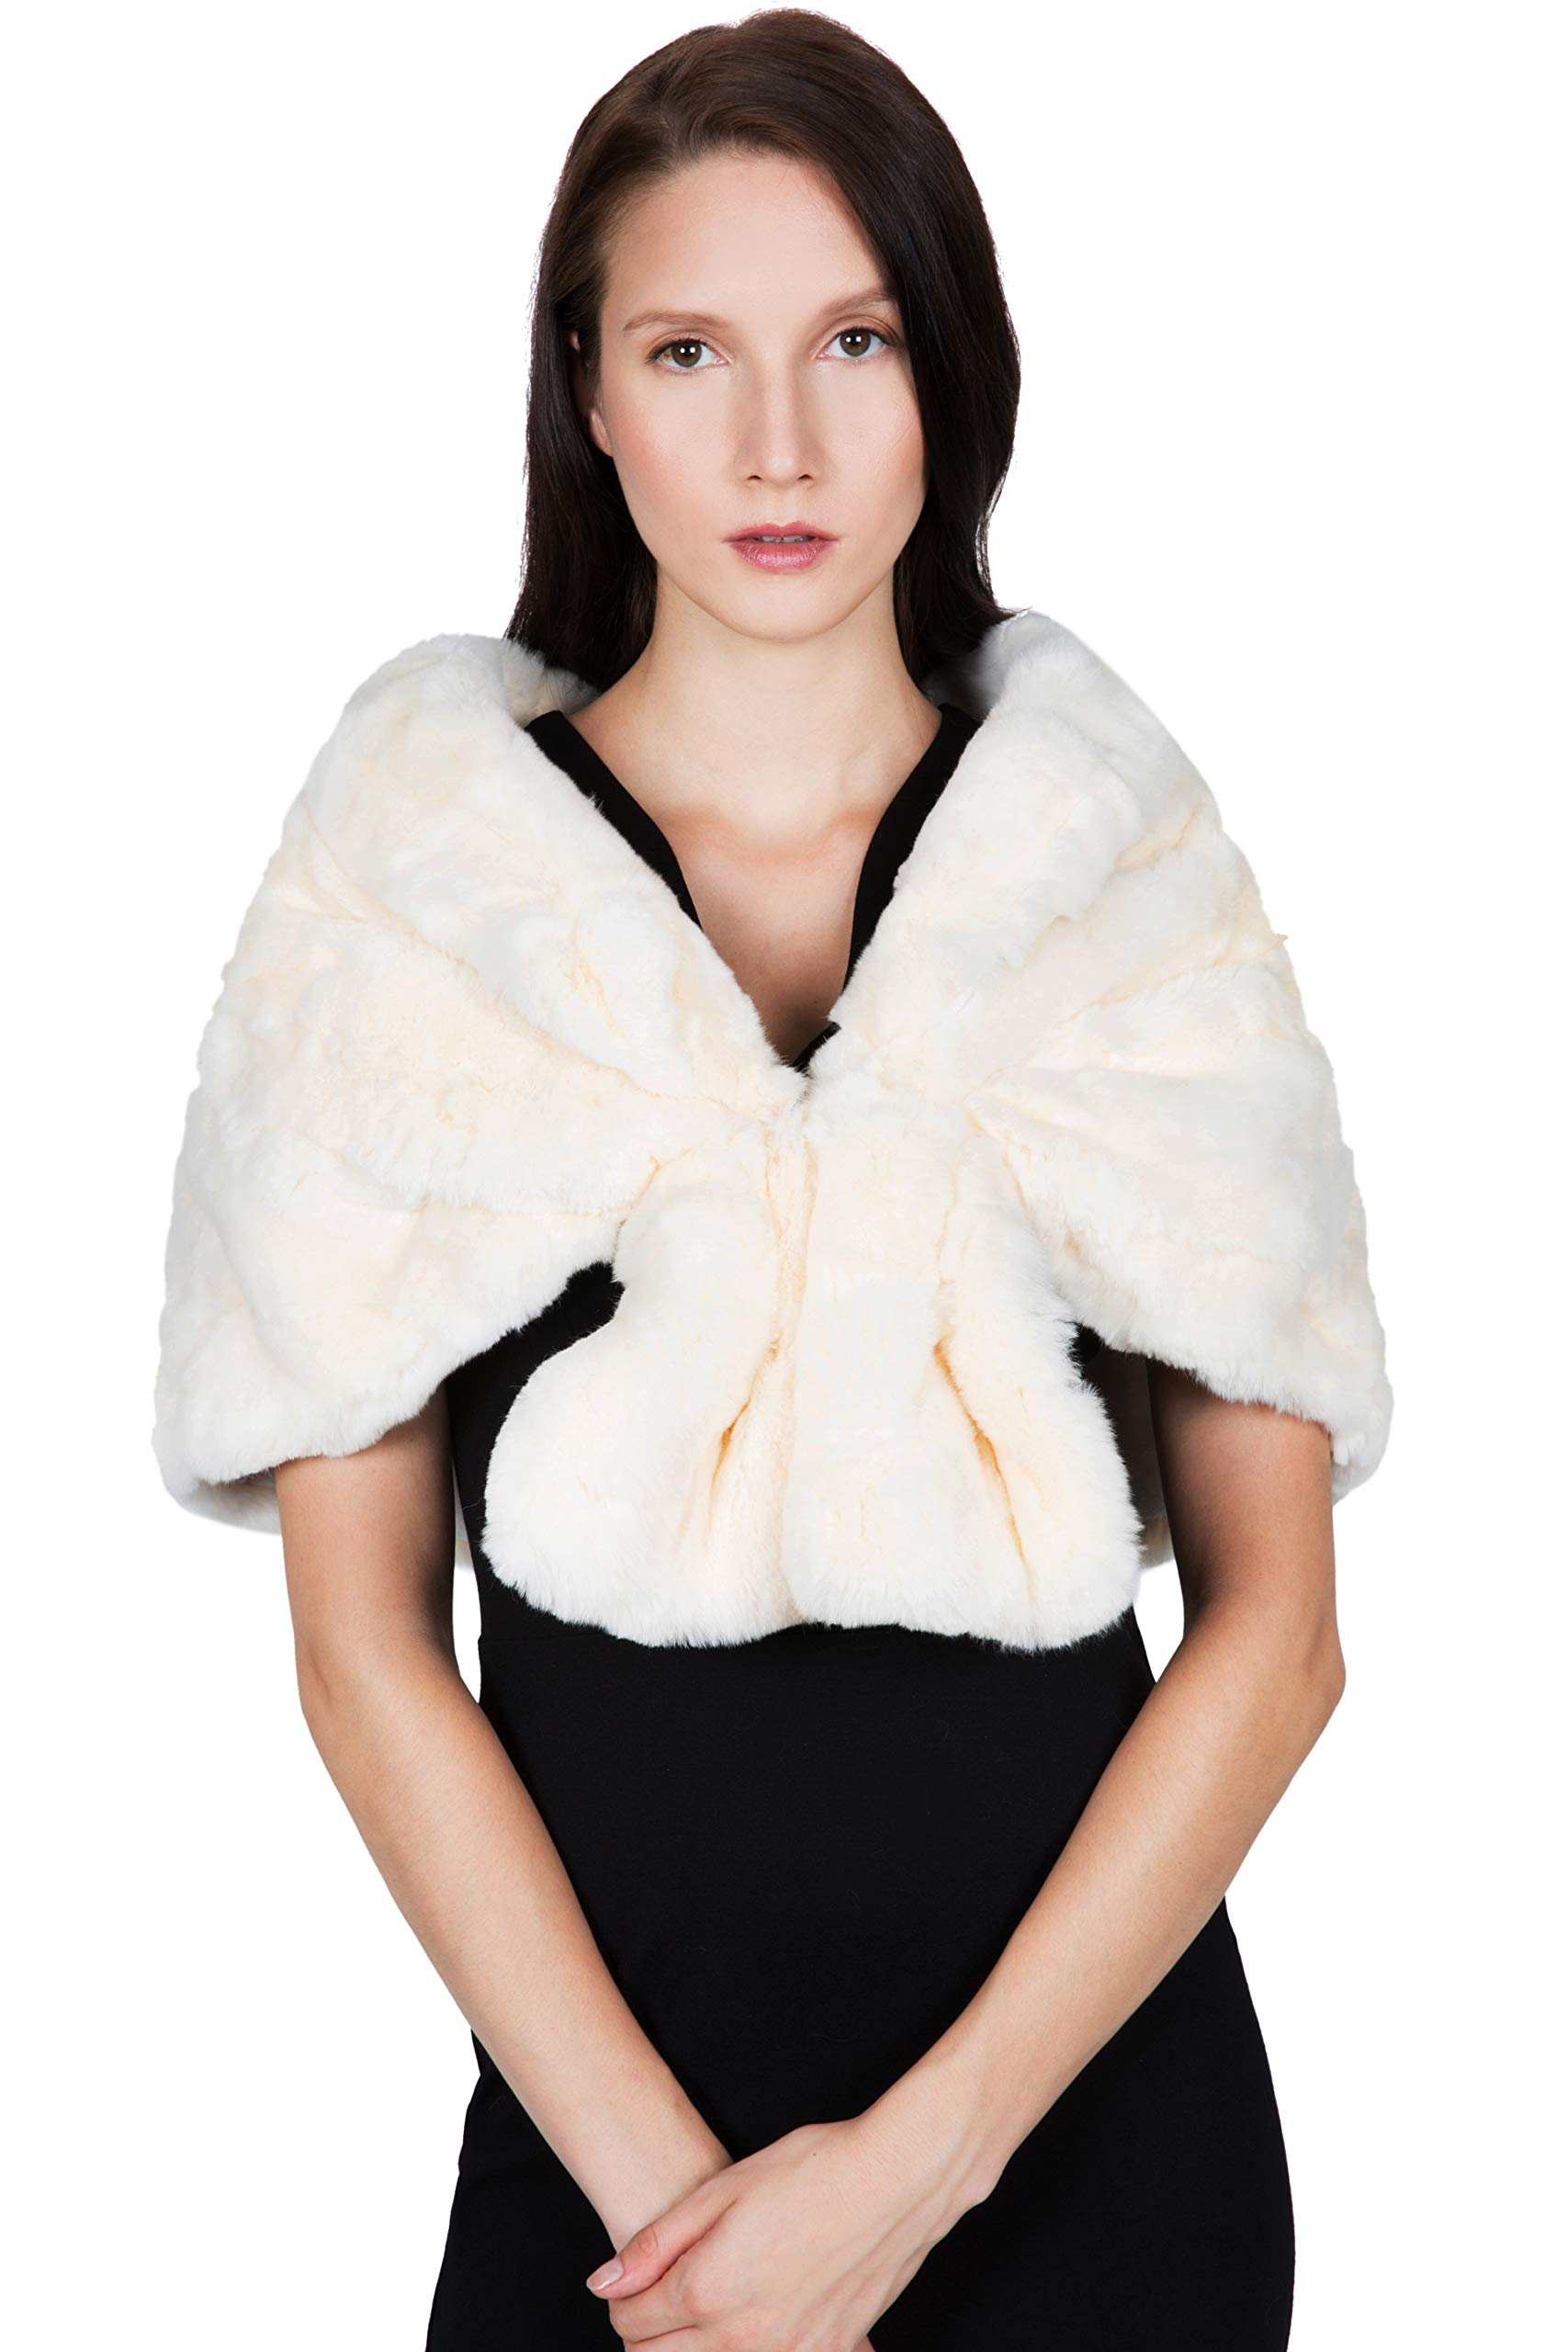 OBURLA Women's Rex Rabbit Fur Cape with Collar | Soft and Luxurious Real Fur Shawl Wrap Stole (Beige) by OBURLA (Image #1)